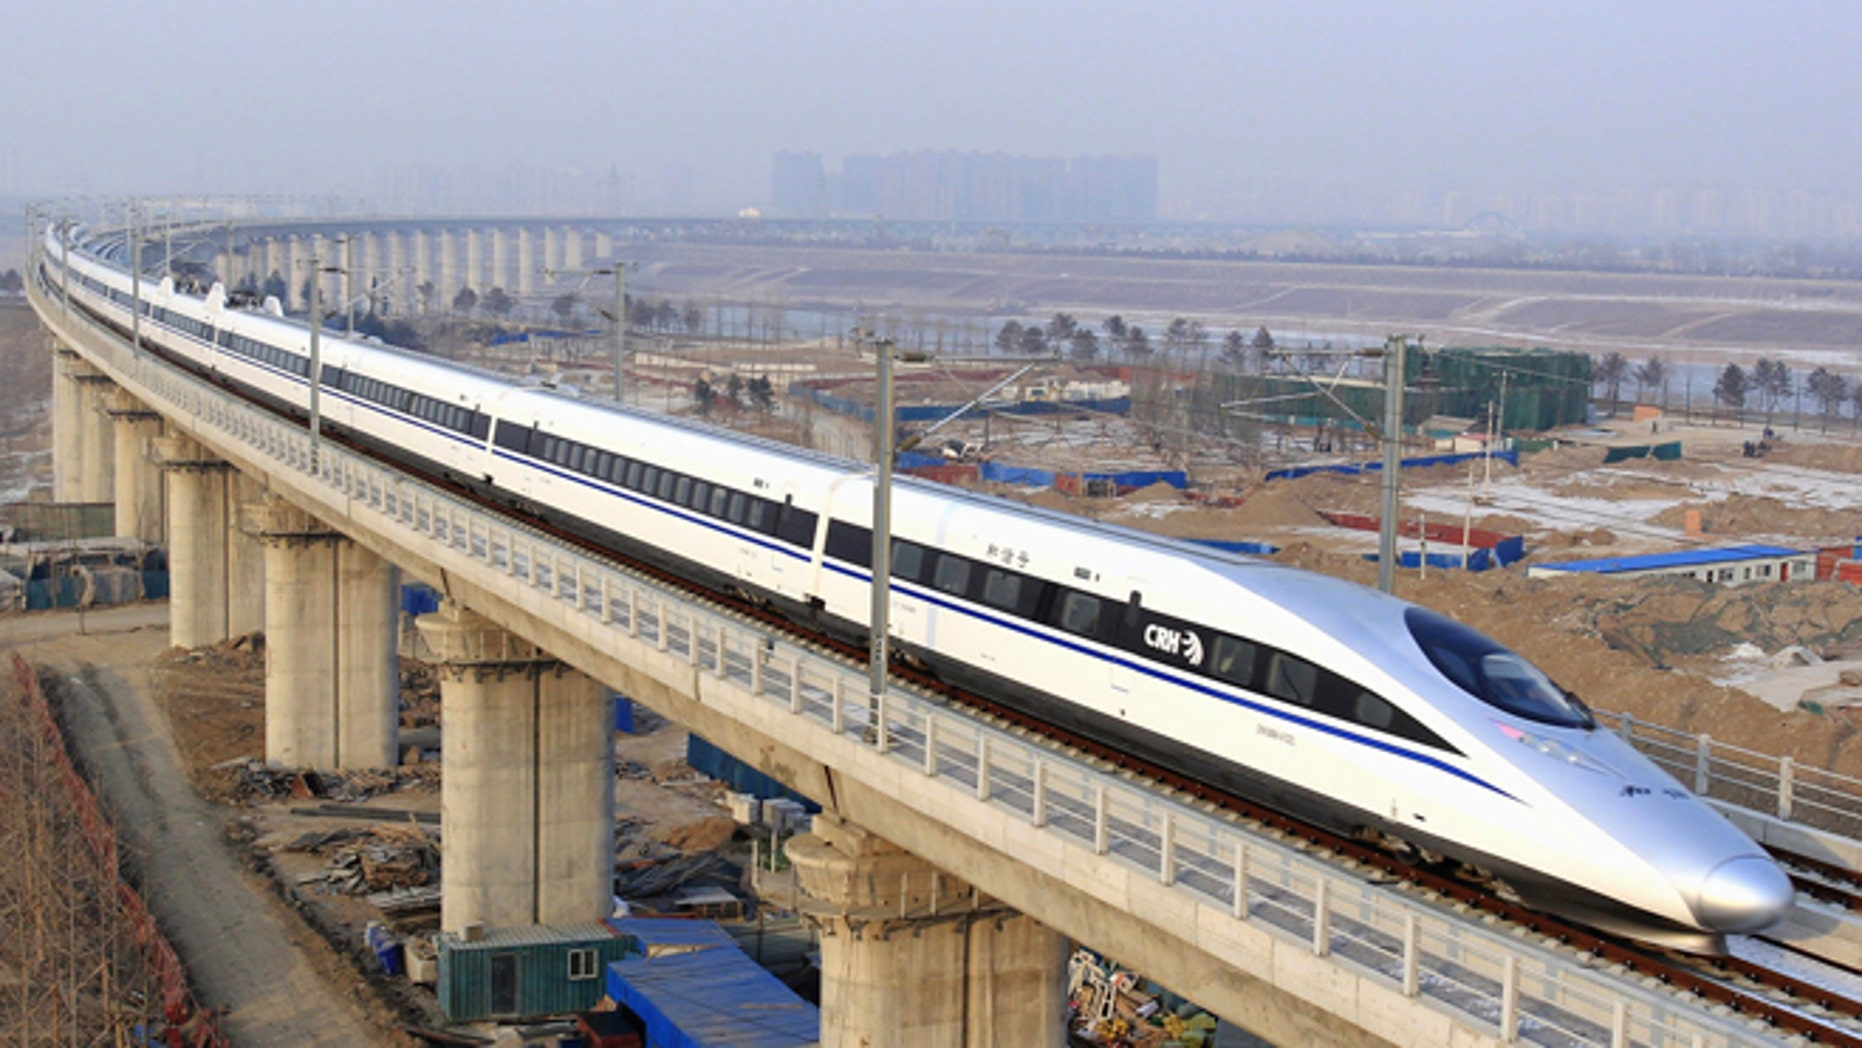 Dec. 26, 2012: In this photo released by China's Xinhua news agency, a bullet train passes over Yongdinghe Bridge in Beijing Wednesday.